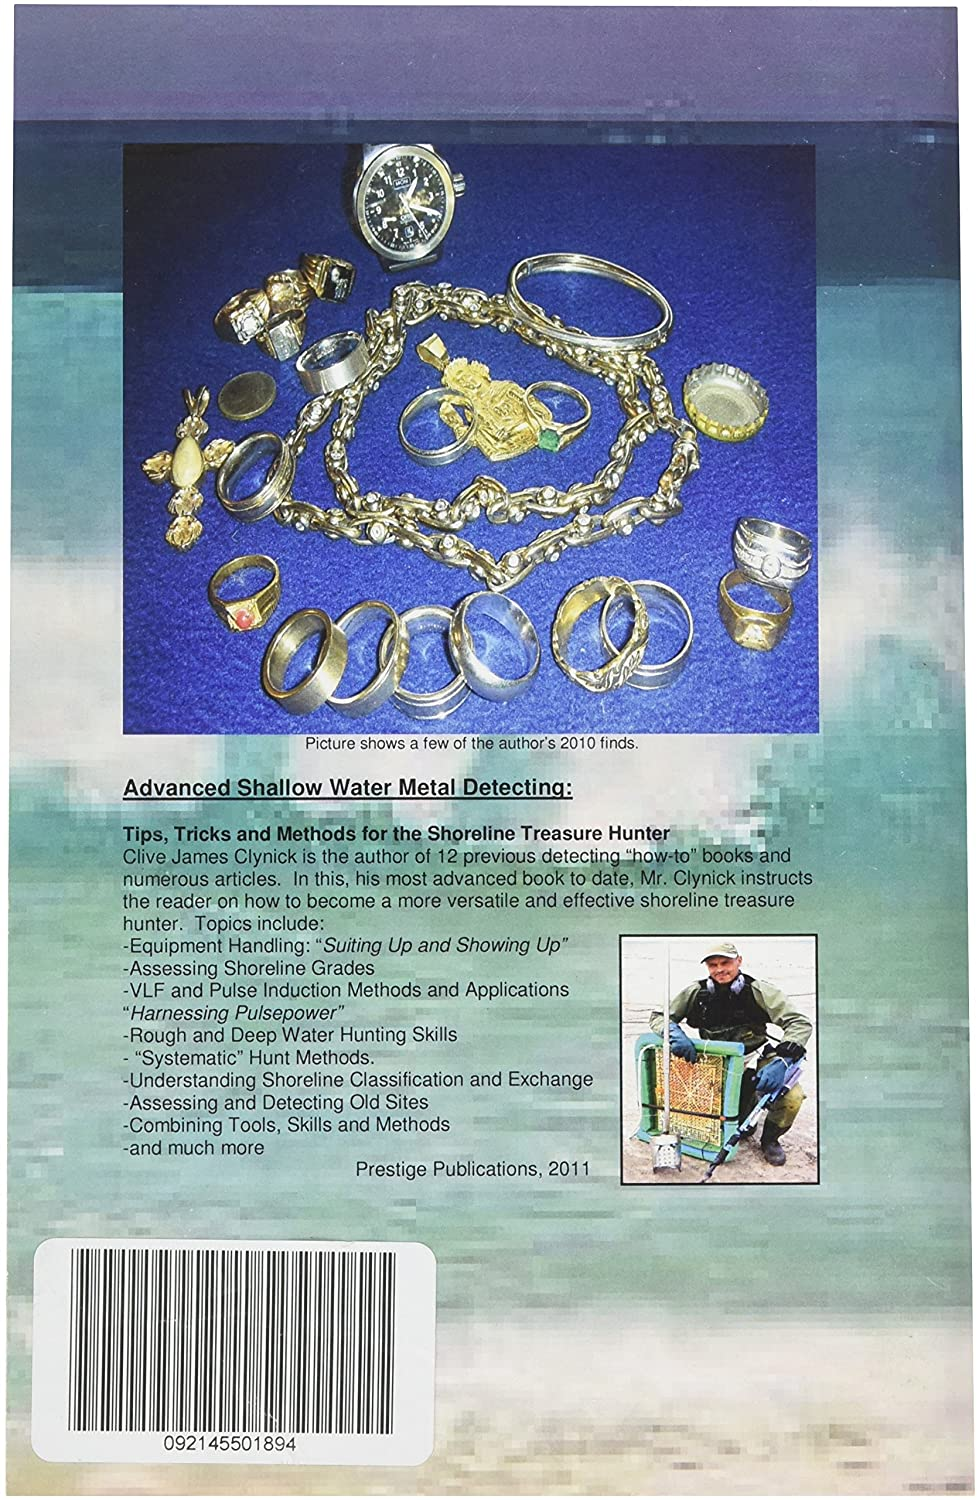 Amazon.com: Advanced Shallow Water Metal Detecting: Tips, Tricks and Methods for the Shoreline Treasure Hunter by Clive Clynick: Garden & Outdoor